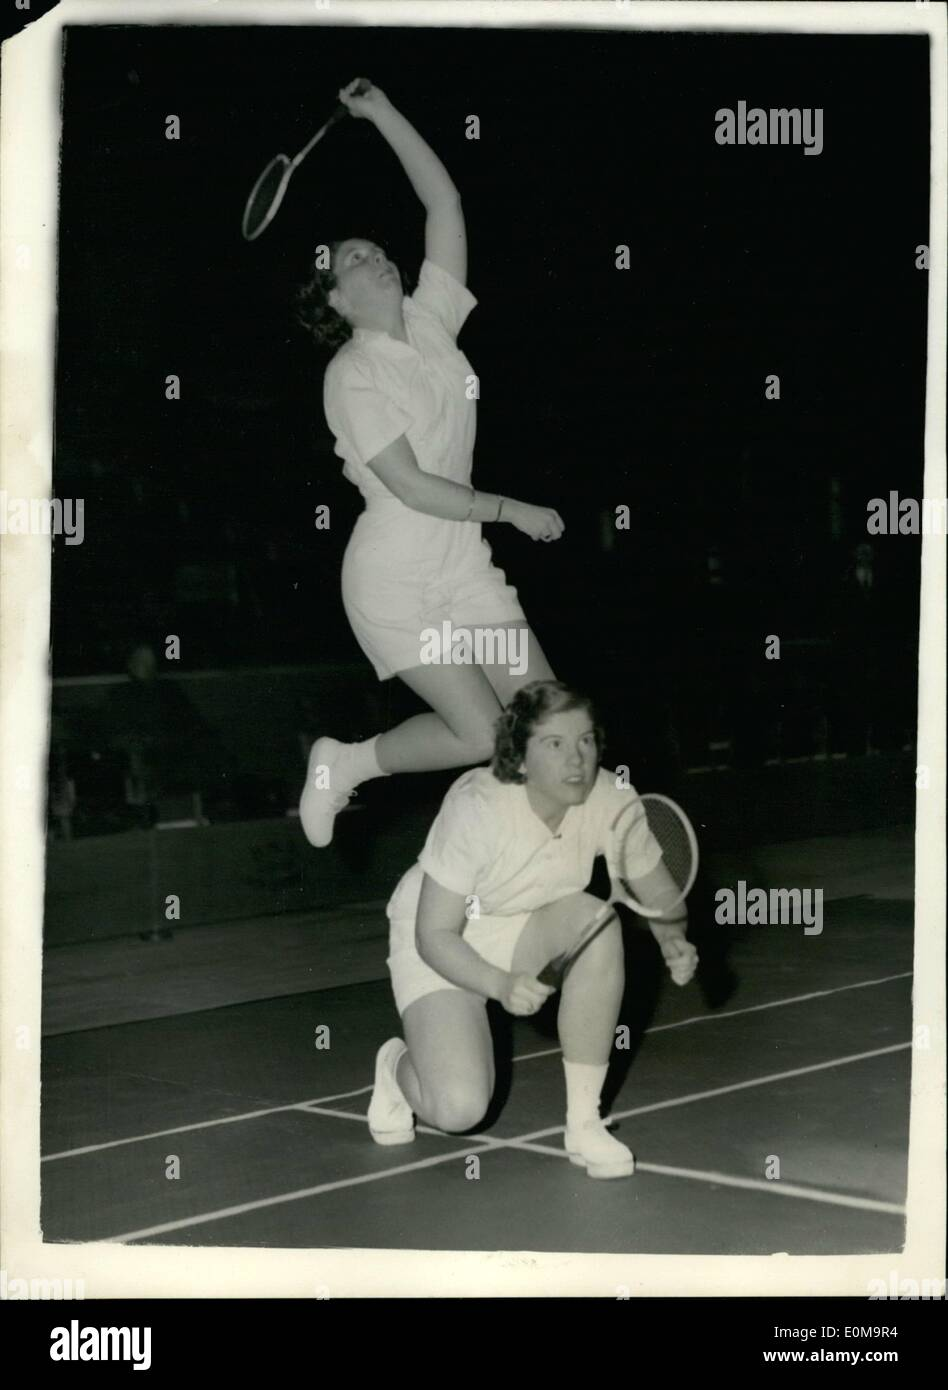 Mar. 03, 1954 - Opening of the All England Badminton Championships. The Devlin sisters from America. Keystone Photo Shows: American sisters who partner each other in the doubles events seen at Empress Hall this afternoon in the All England Badminton Championships. They are Judy Devlin (22) who crouches as her sister Susan (18) reaches high. JSS/Keystone - Stock Image